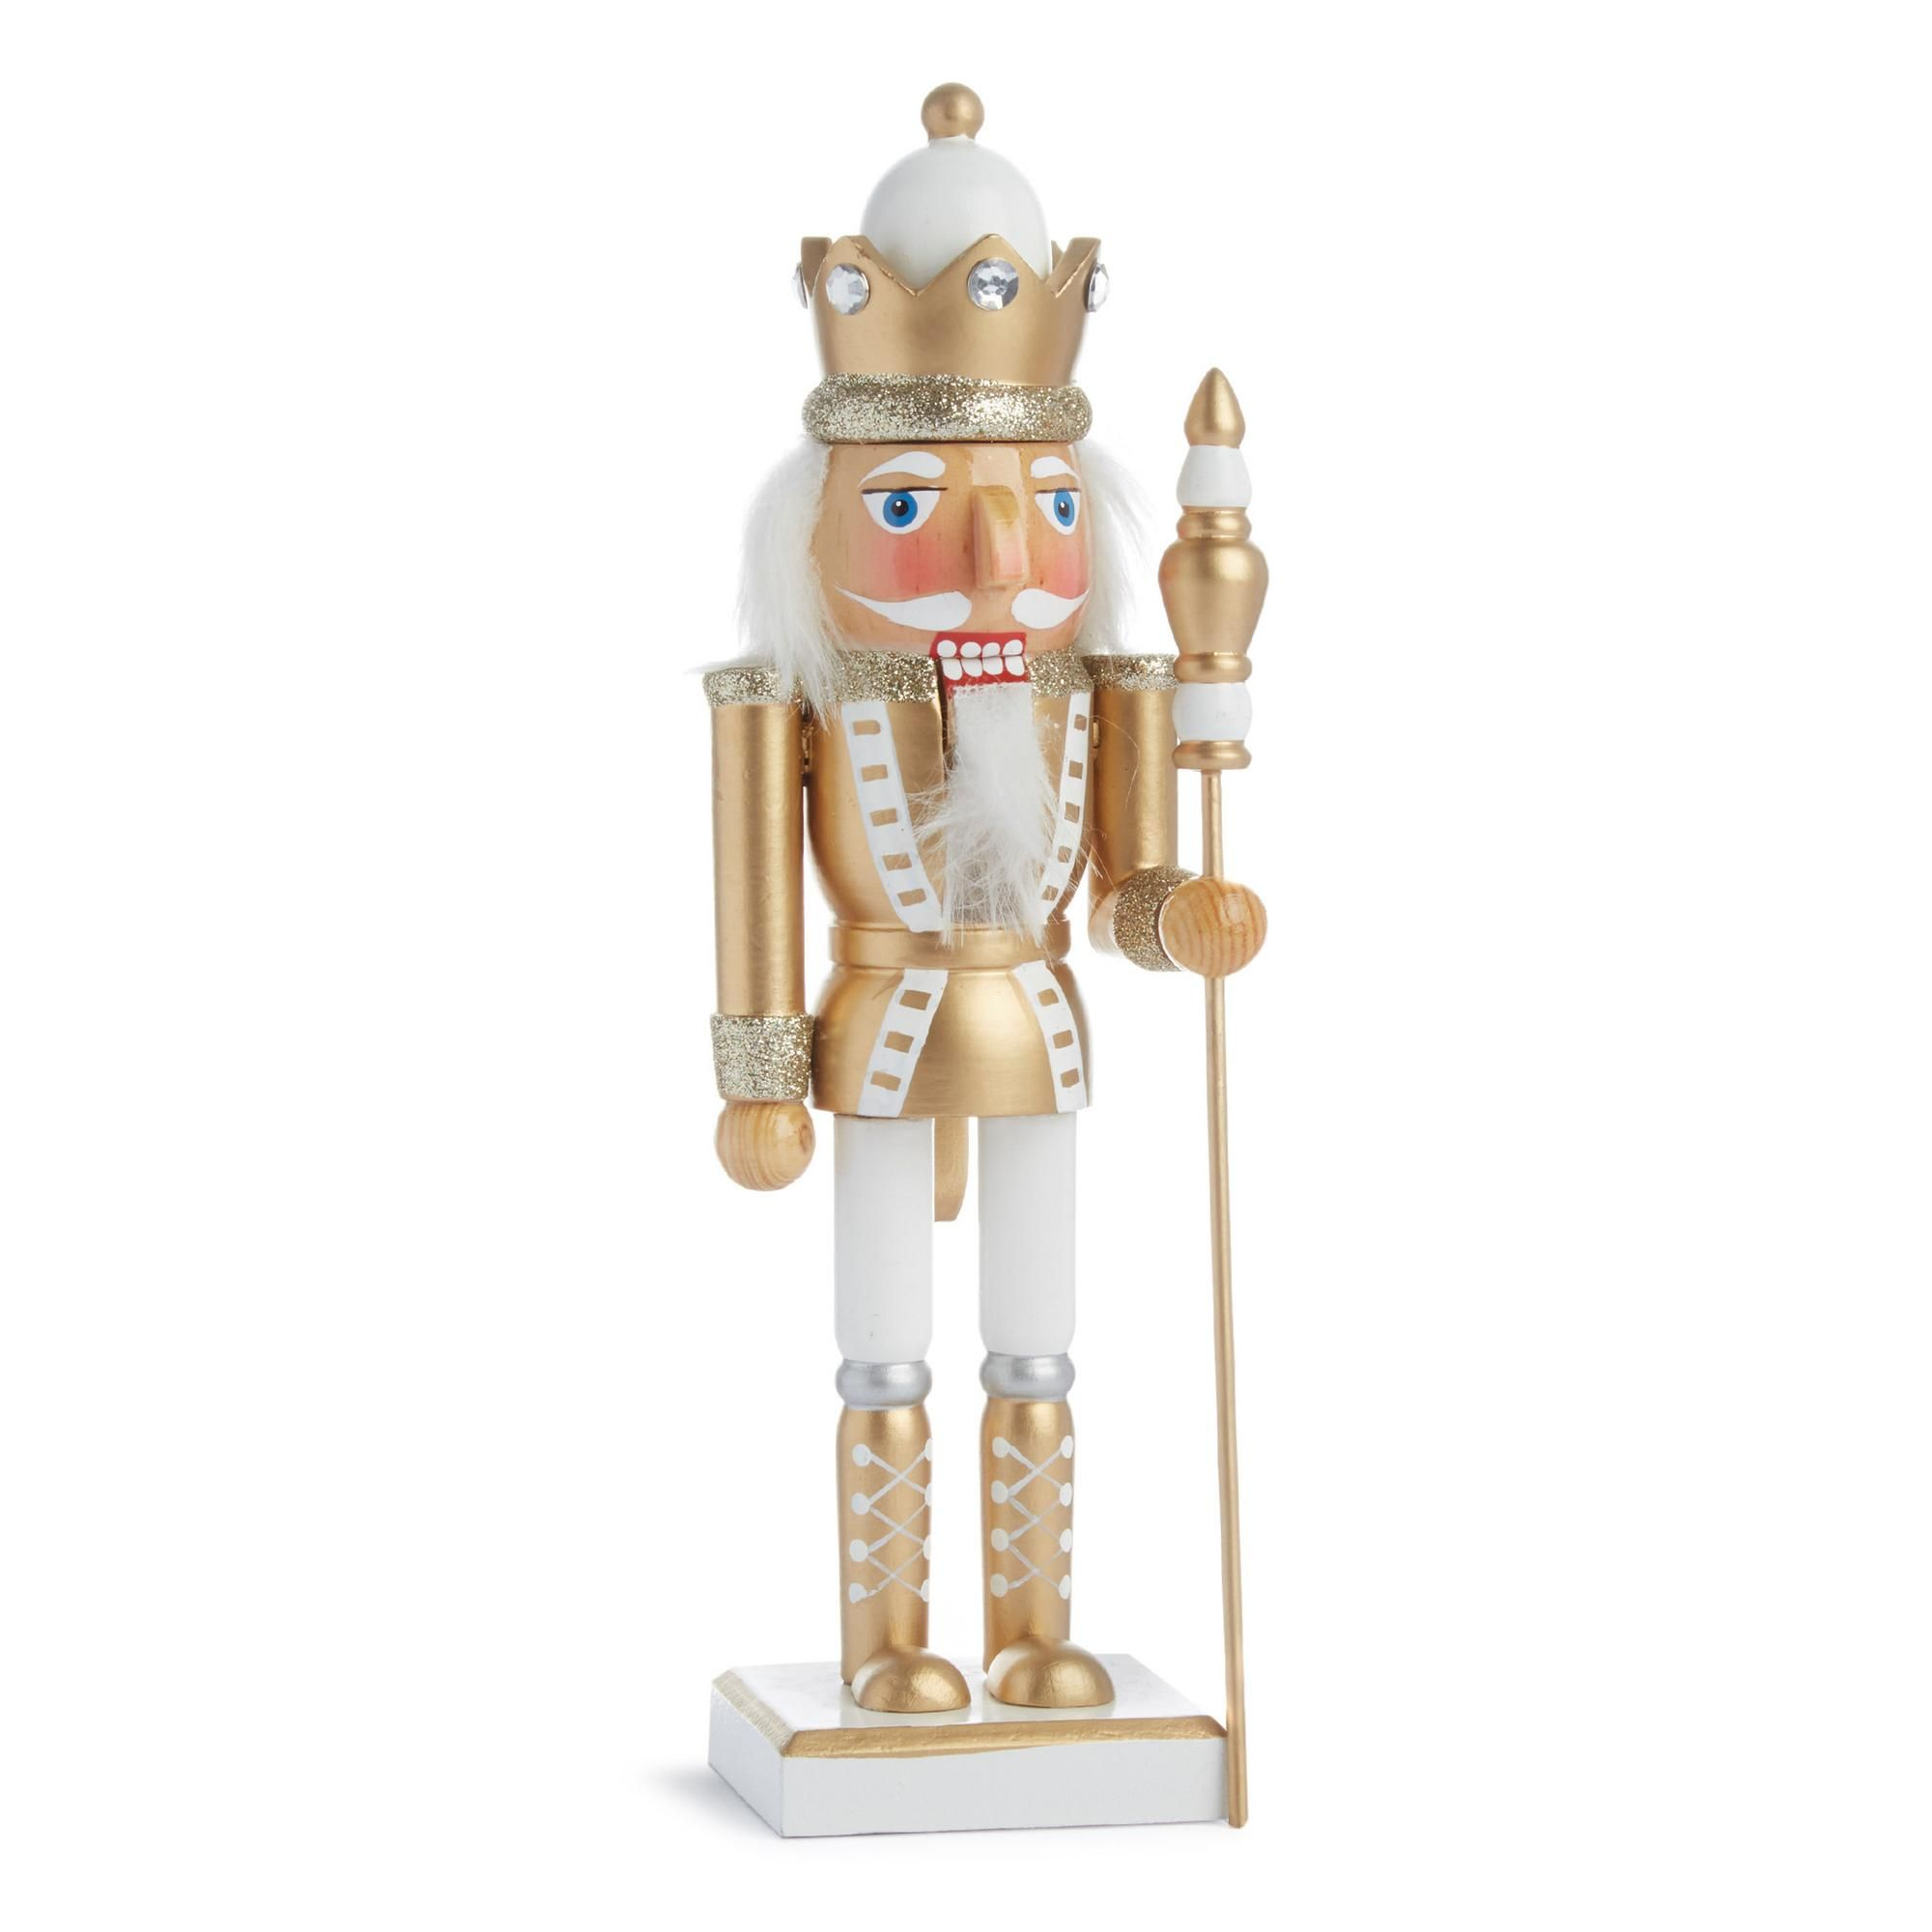 Medium Gold Nutcracker Decoration | Seasonal | Homeware ...